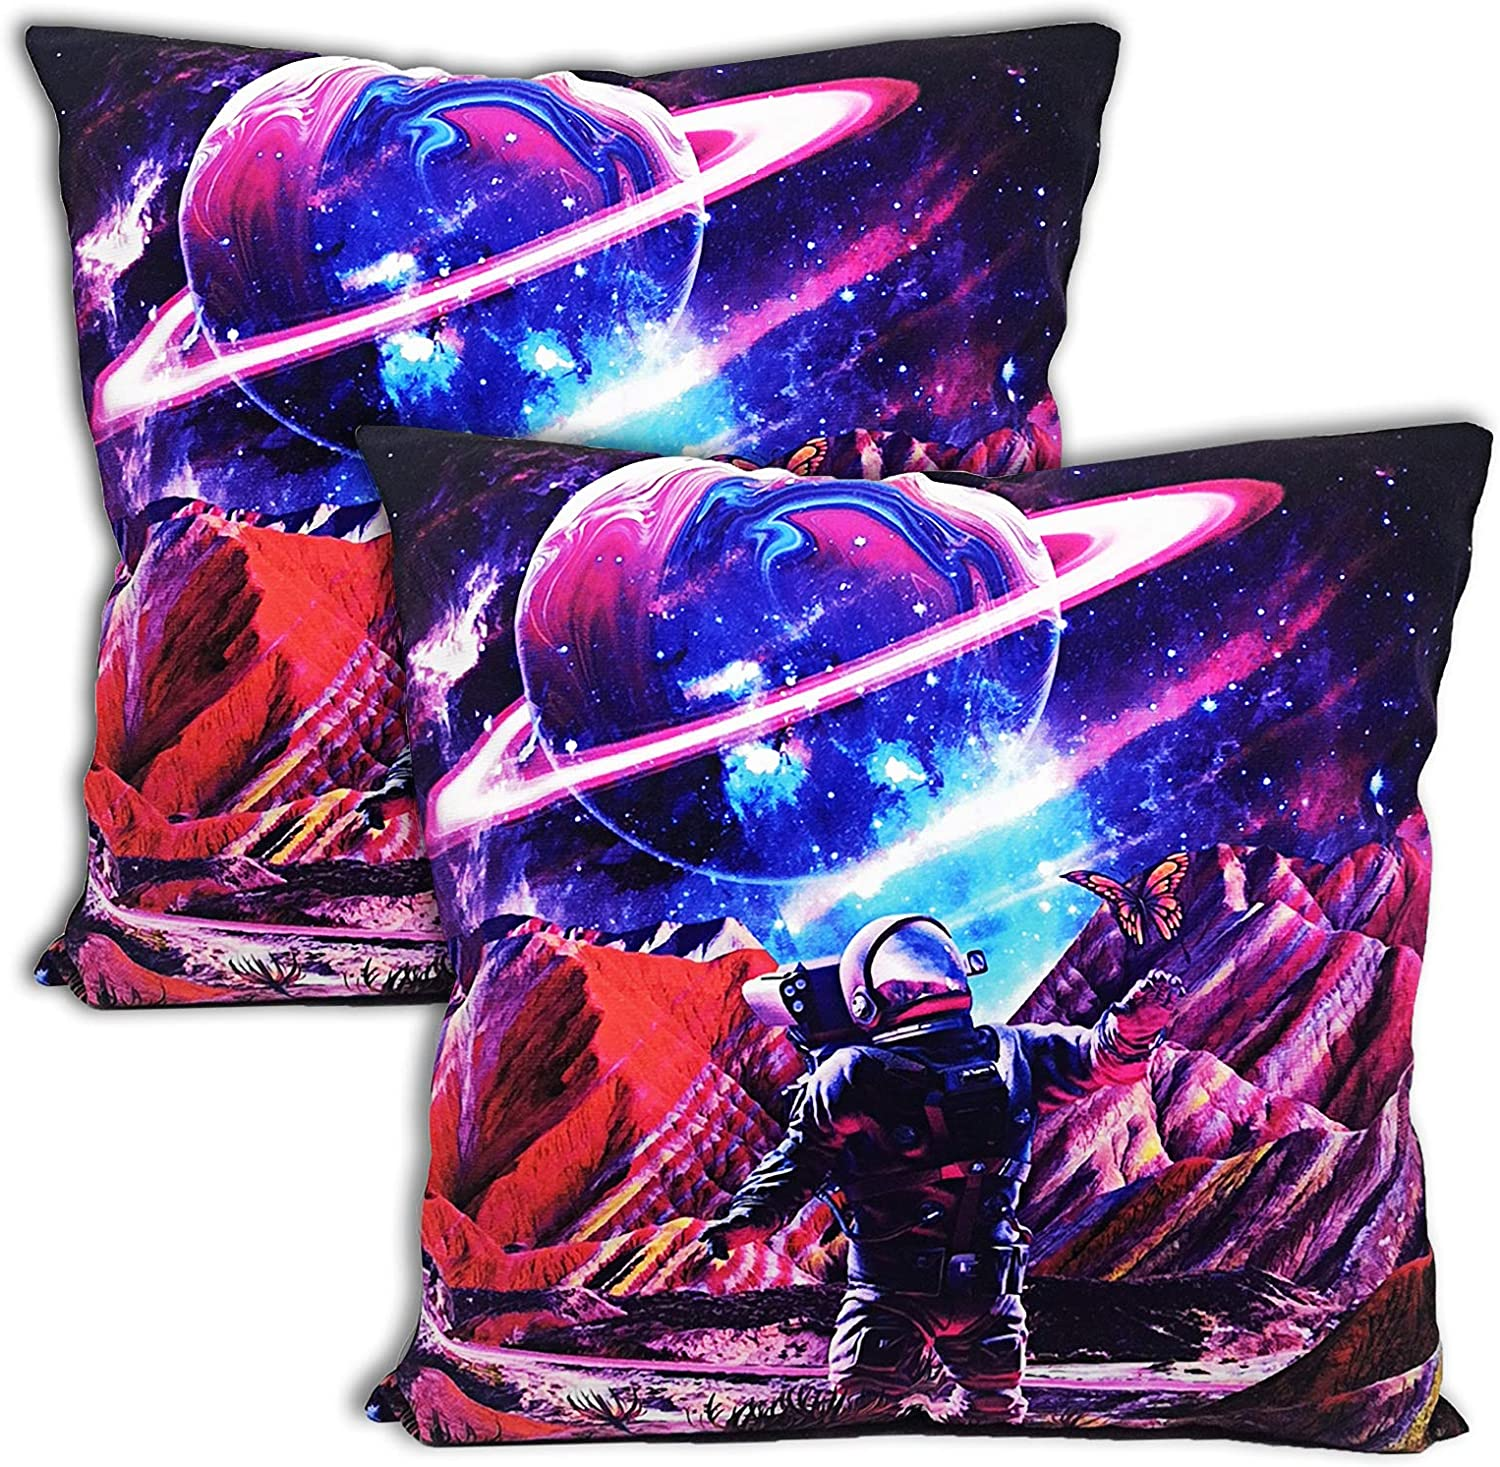 Throw Pillowcase 18x18 Set of 2 for Childs,Space Astronaut Funny Pillow Case Cover for Kids,Boys Girls Room Decor Chair, Sofa, Bed, Bedding, Seat Decoration (Trippy Planet)